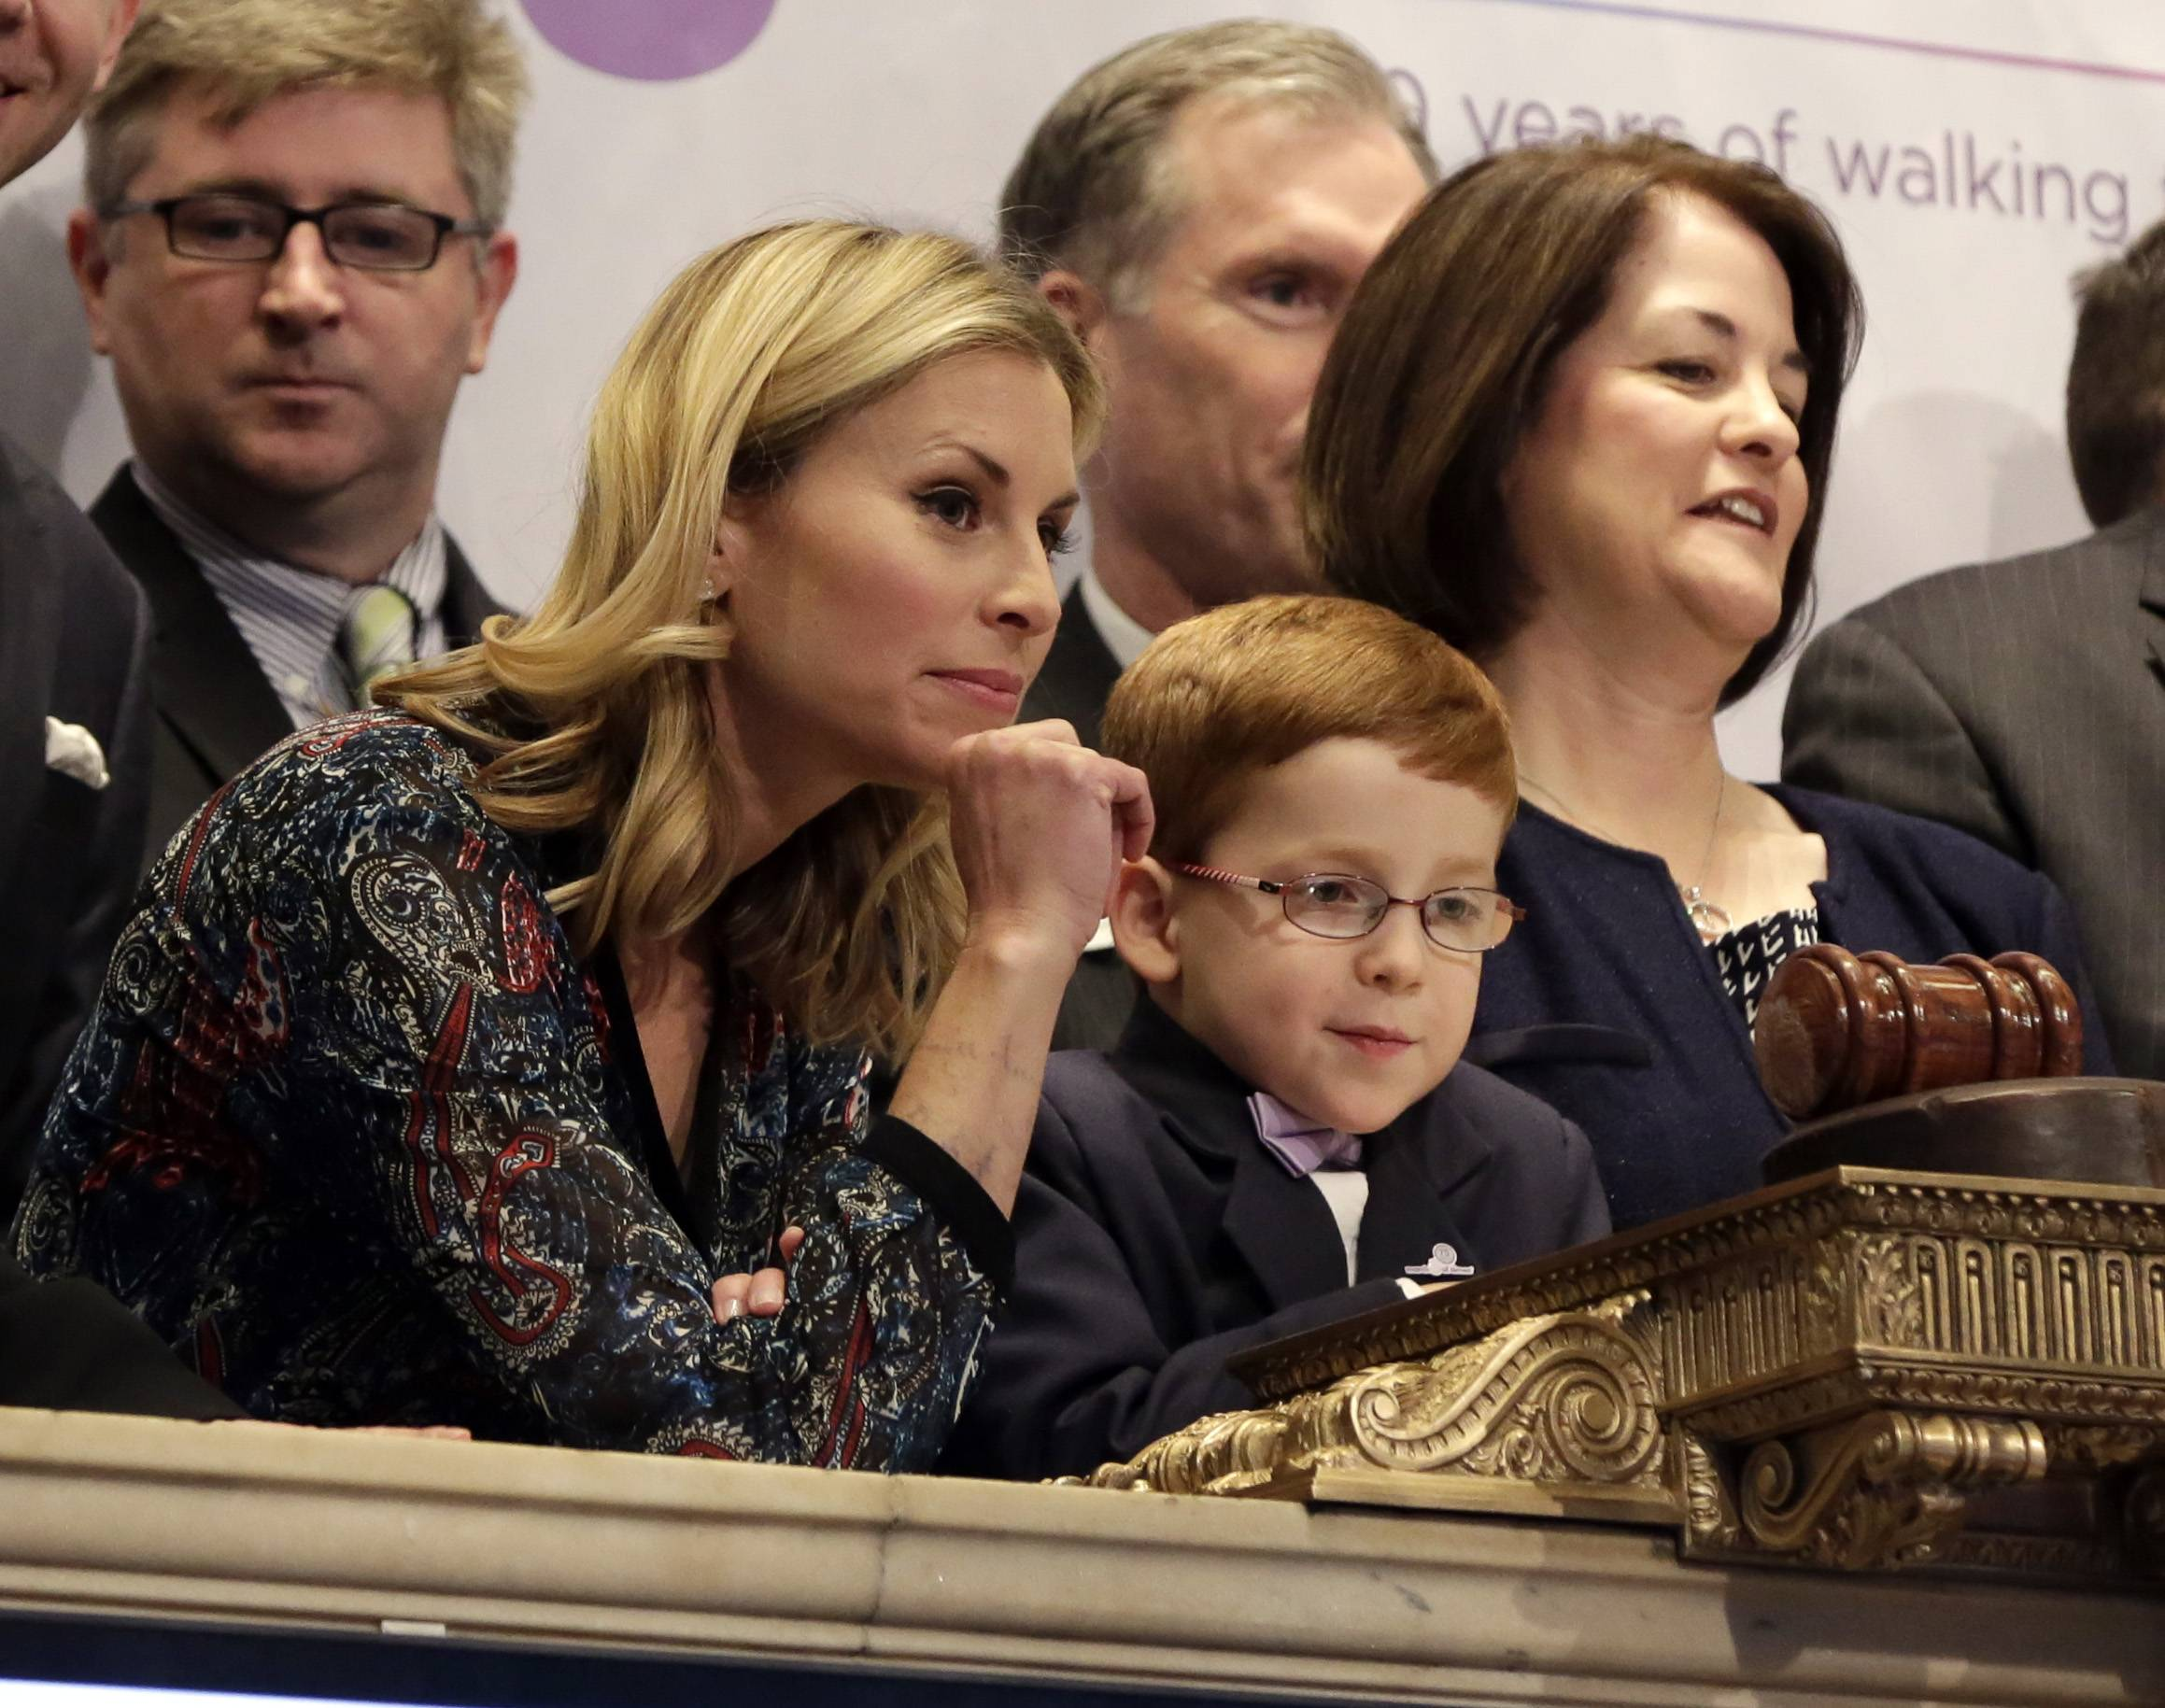 Supermodel Niki Taylor and March of Dimes 2014 National Ambassador Aidan Lamothe watch floor activity from the podium before ringing the New York Stock Exchange closing bell Monday.  U.S. stocks fell, pushing the Nasdaq 100 Index to its biggest three-day retreat since 2011.